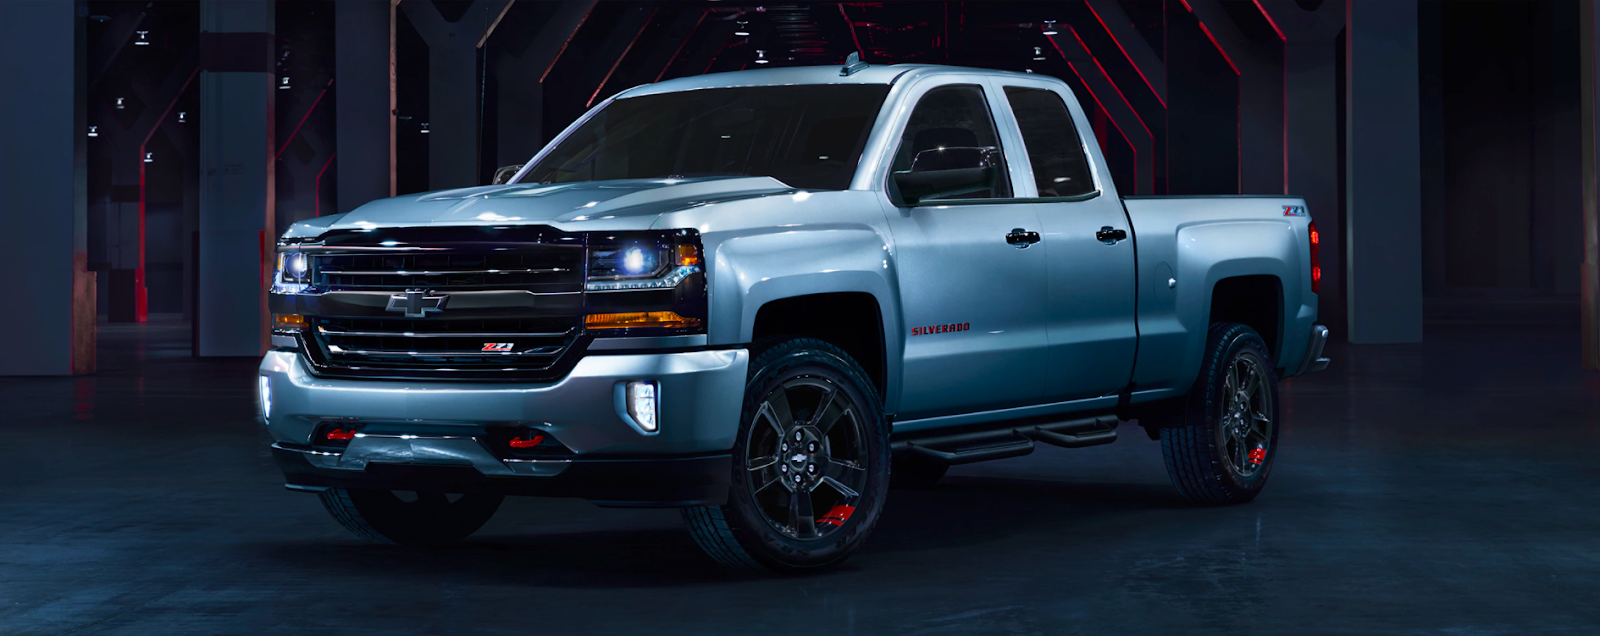 The Redline Edition Silverado Is Coming In Hot With Red And Black Accents That Give Truck A Bold Urban Look Subtle Changes To S